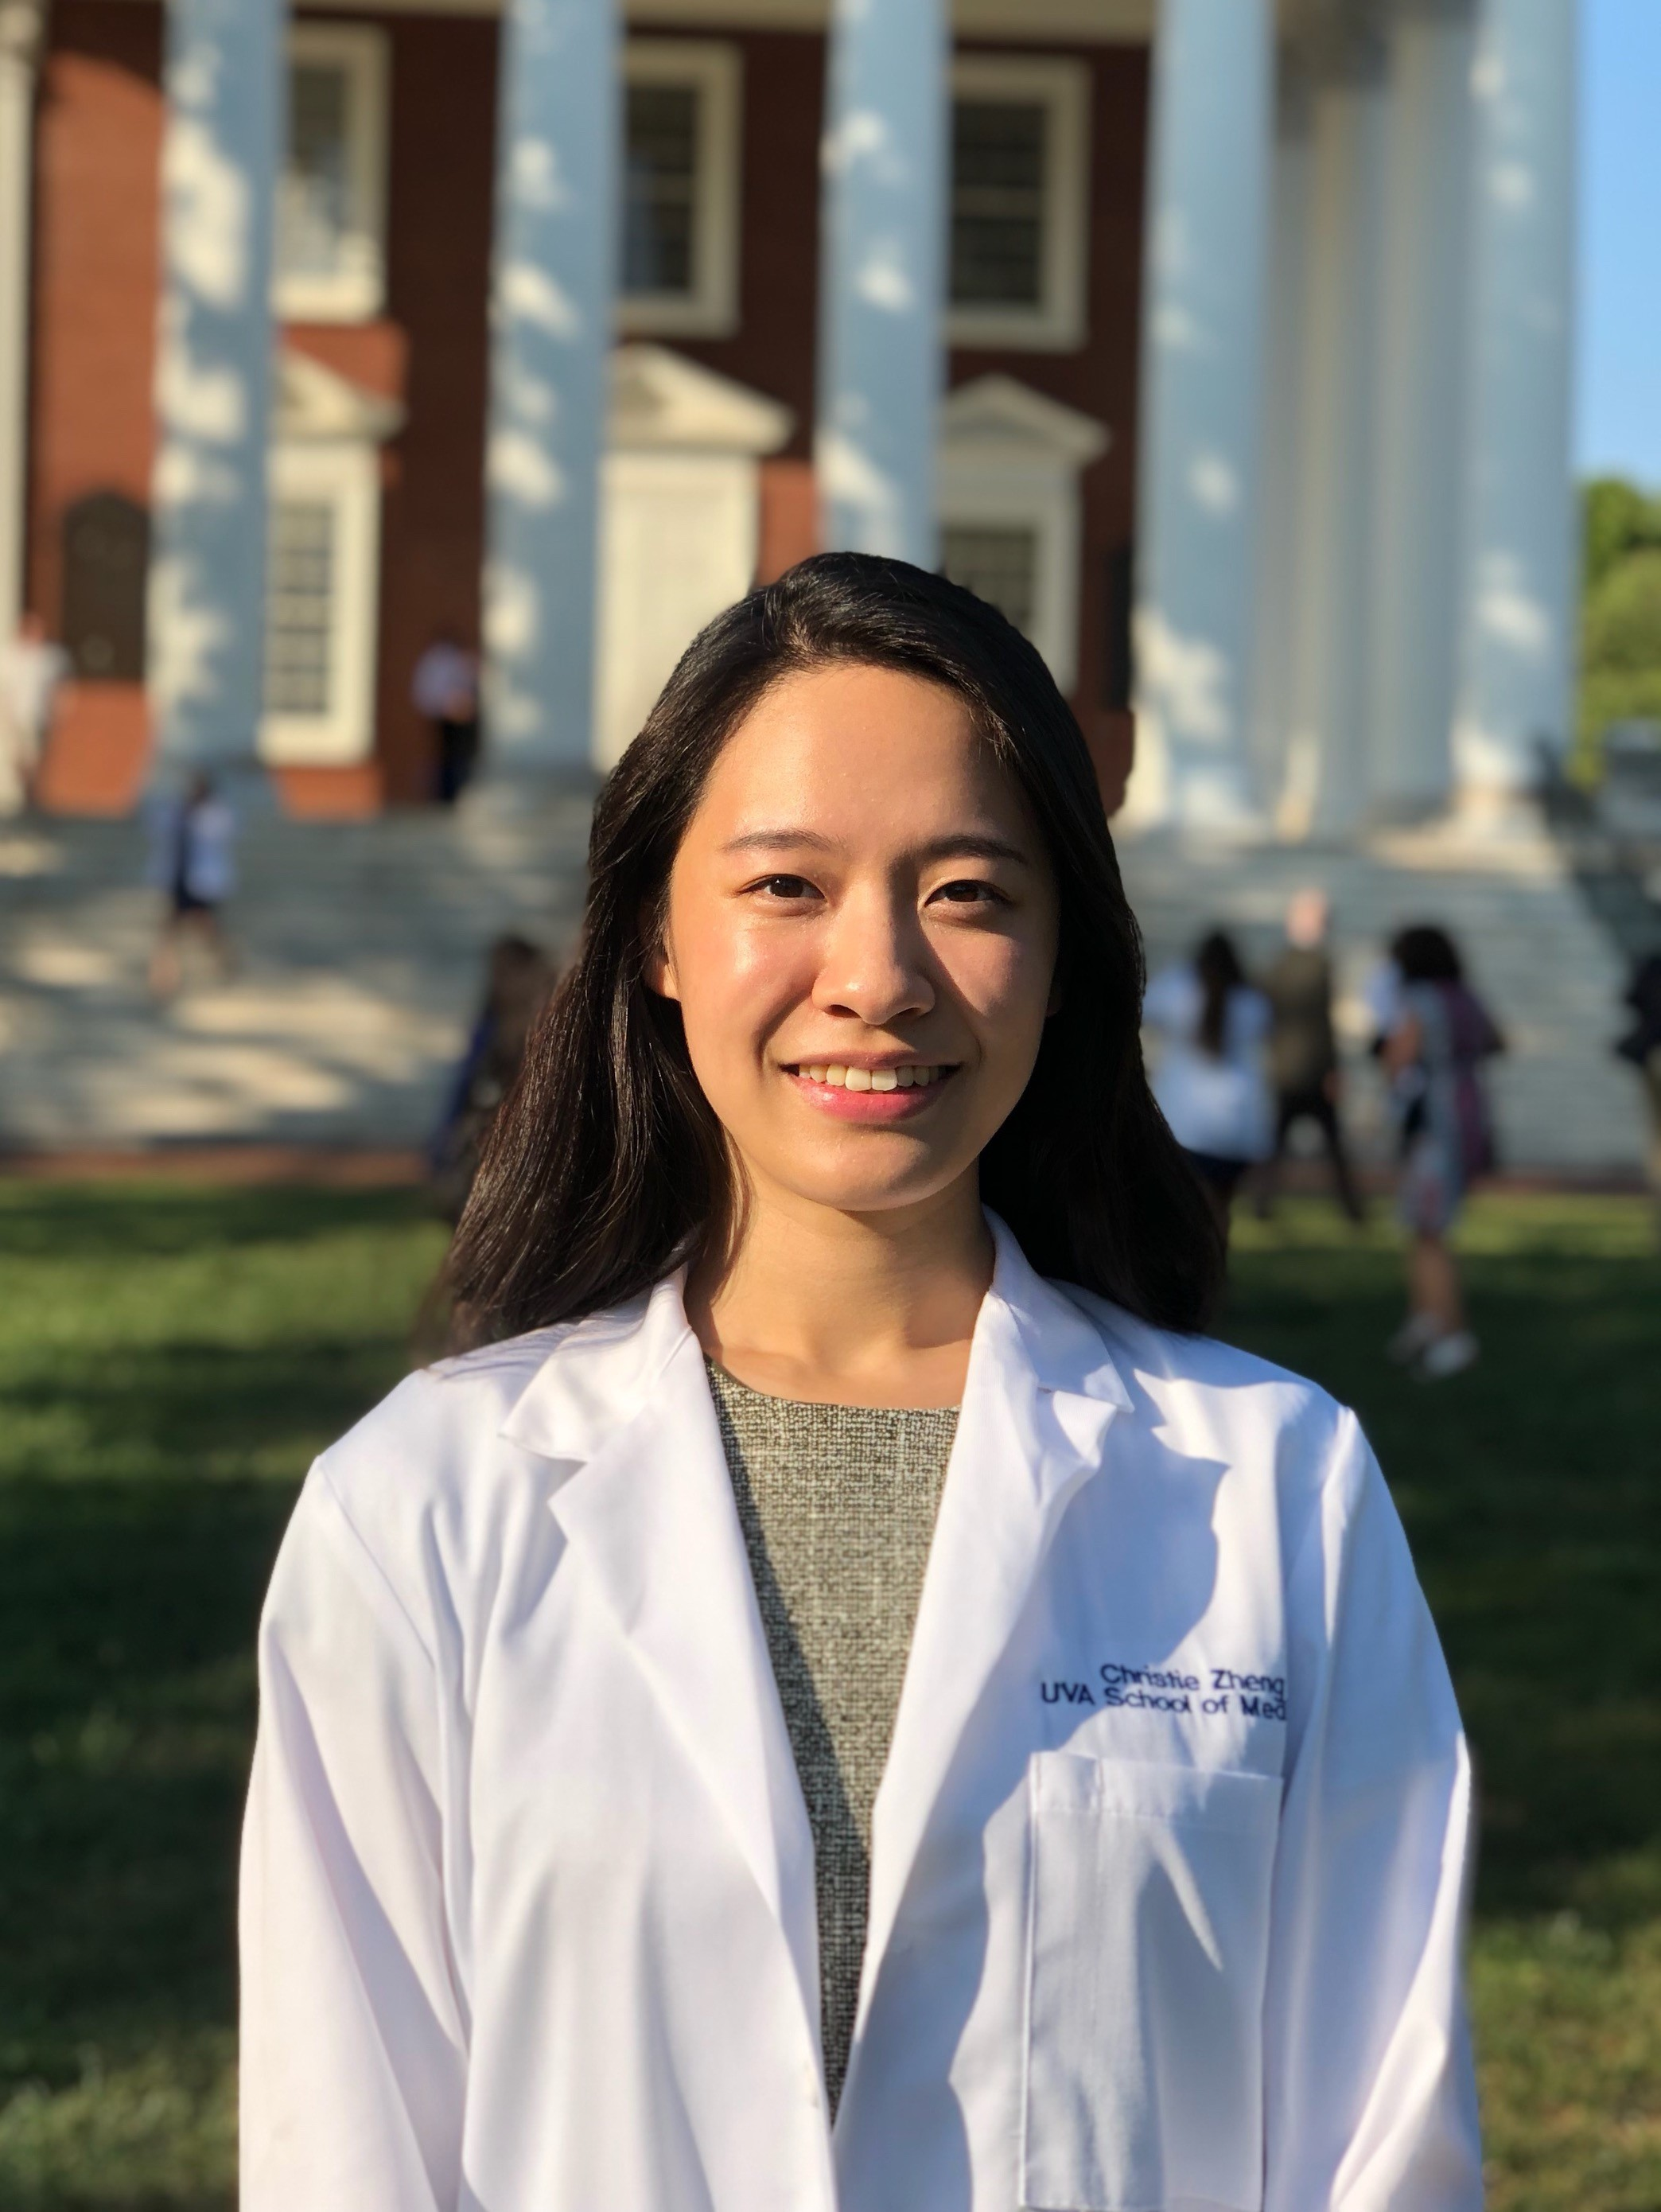 medical student in the US